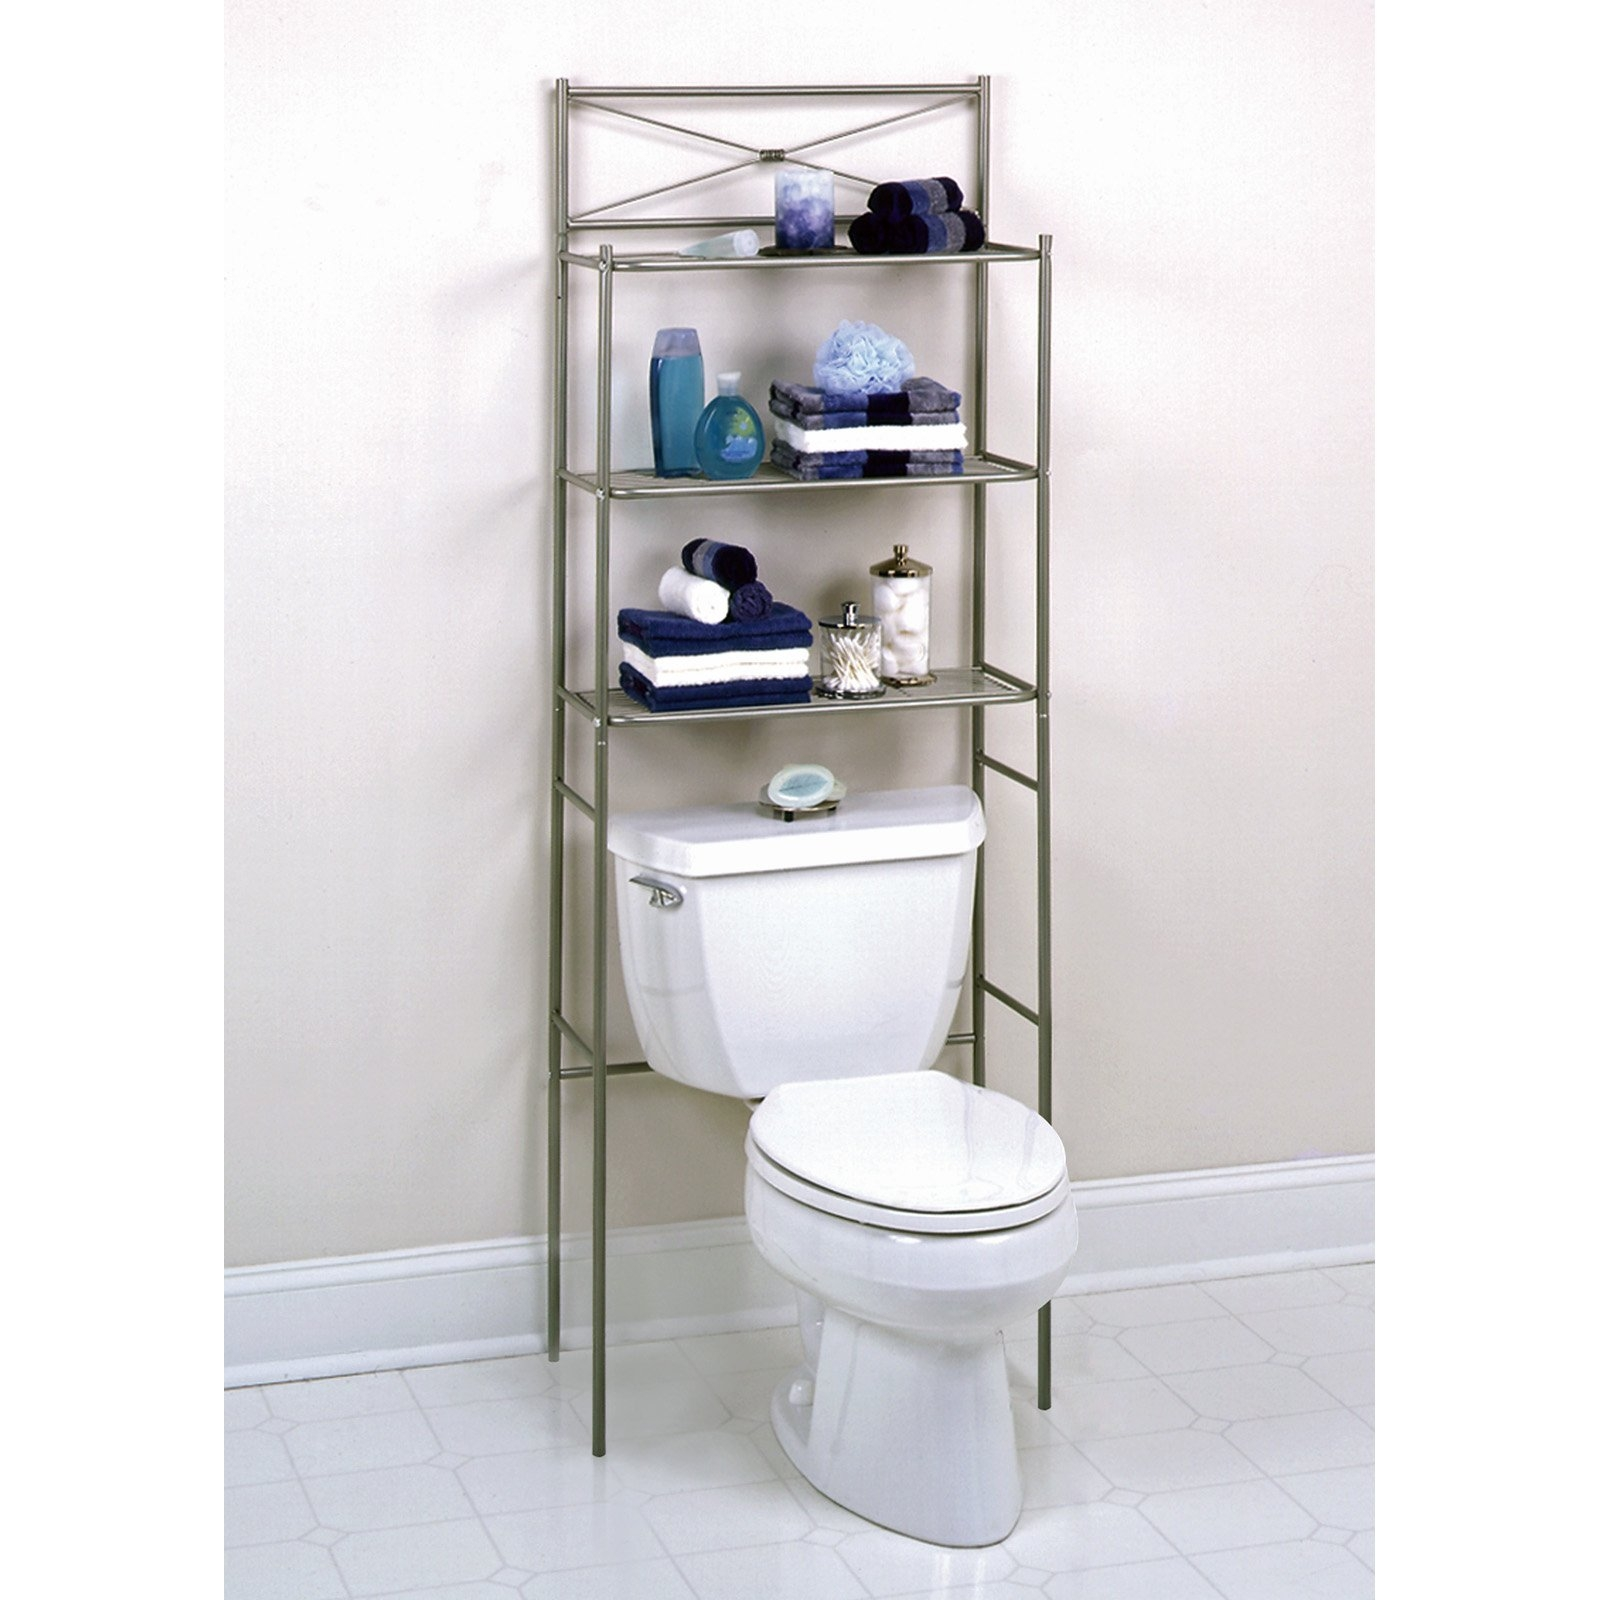 Bathroom Space Saver Cabinet With Wheels